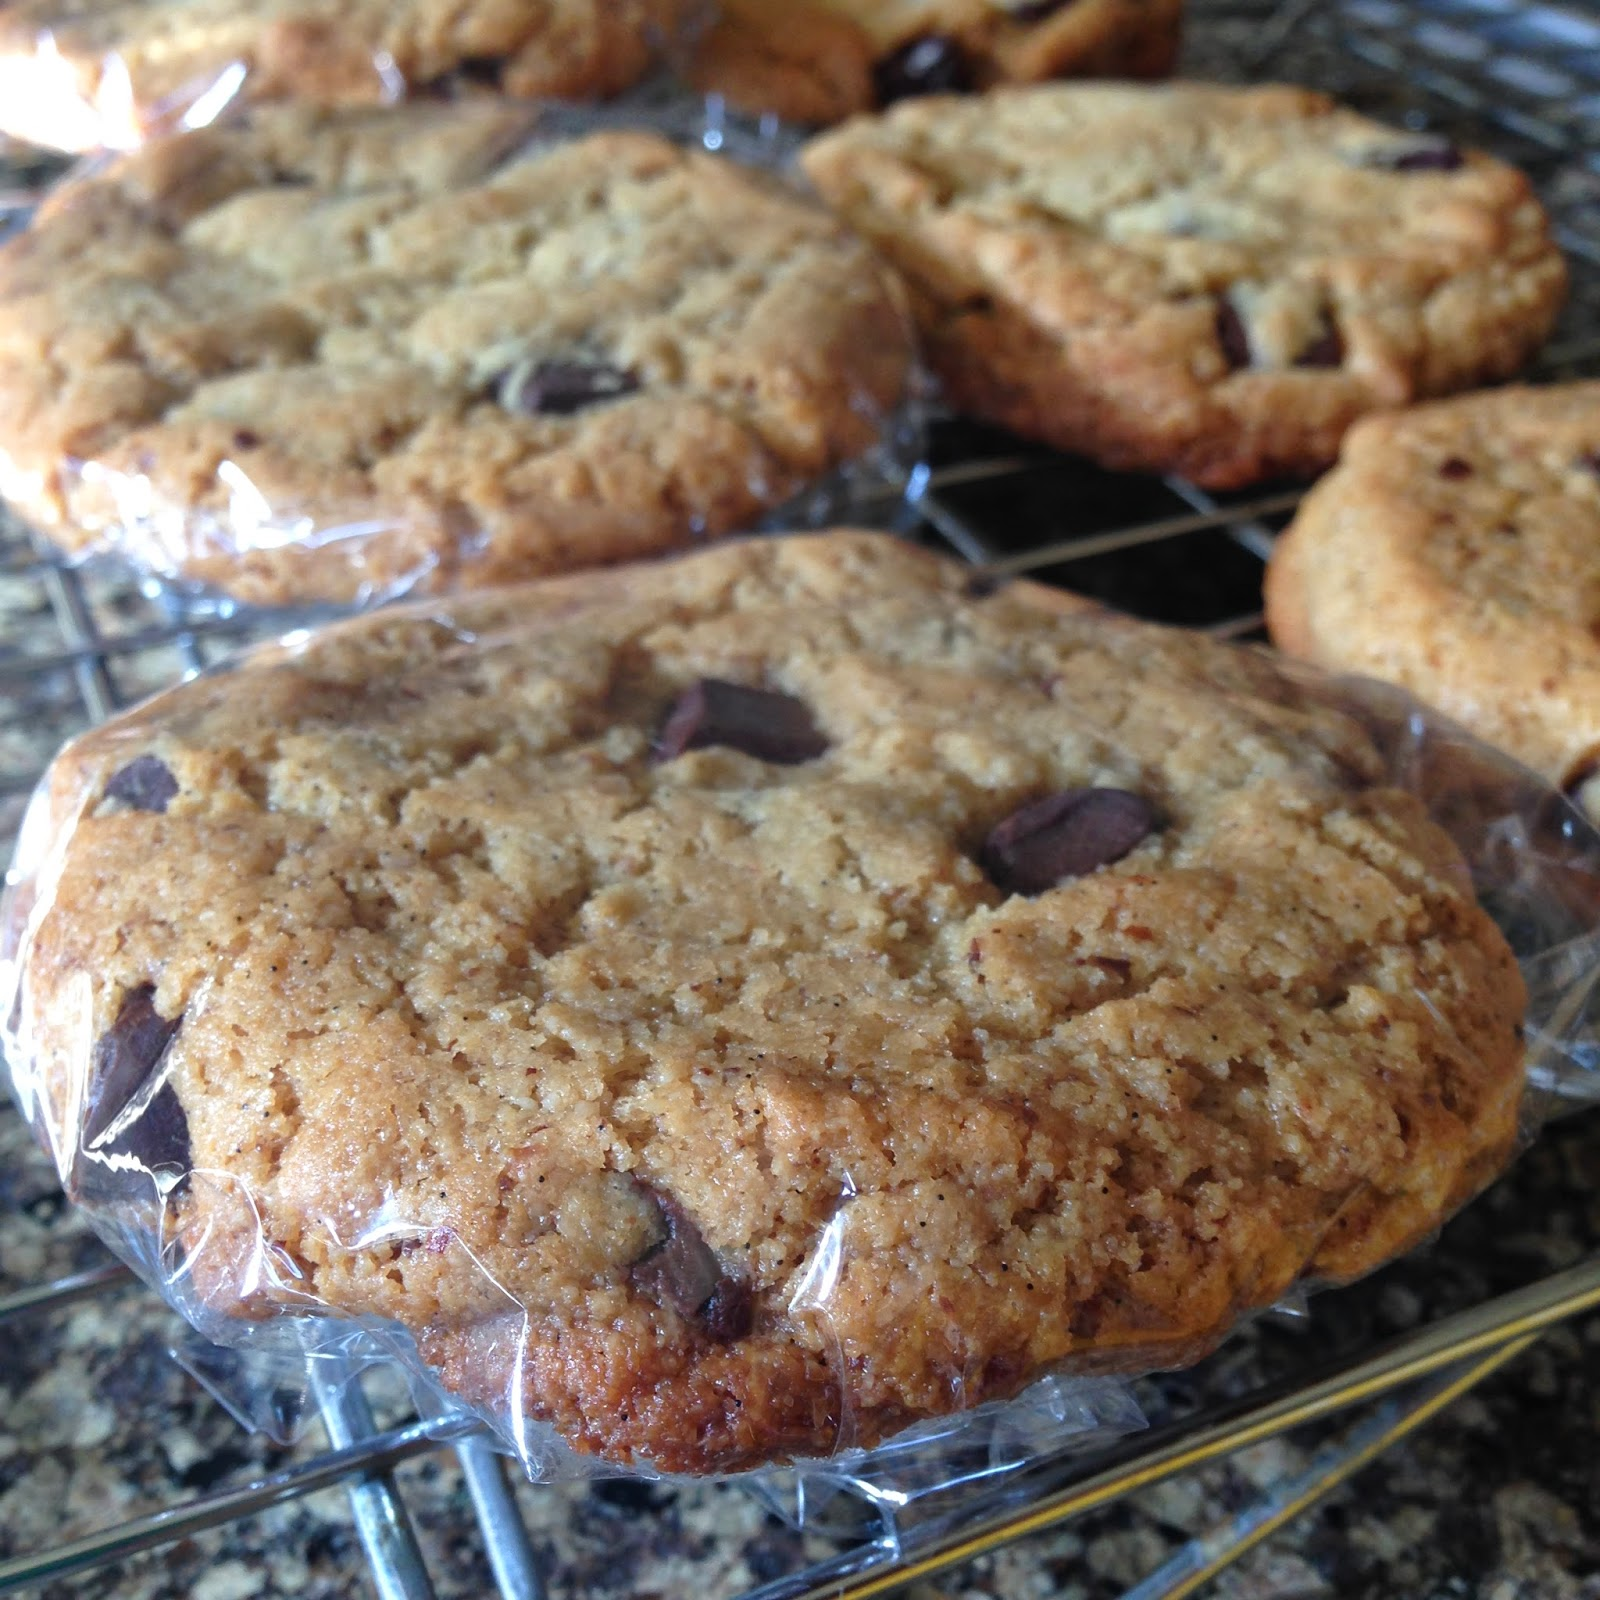 Grain-free egg-free Chocolate Chip Cookie!